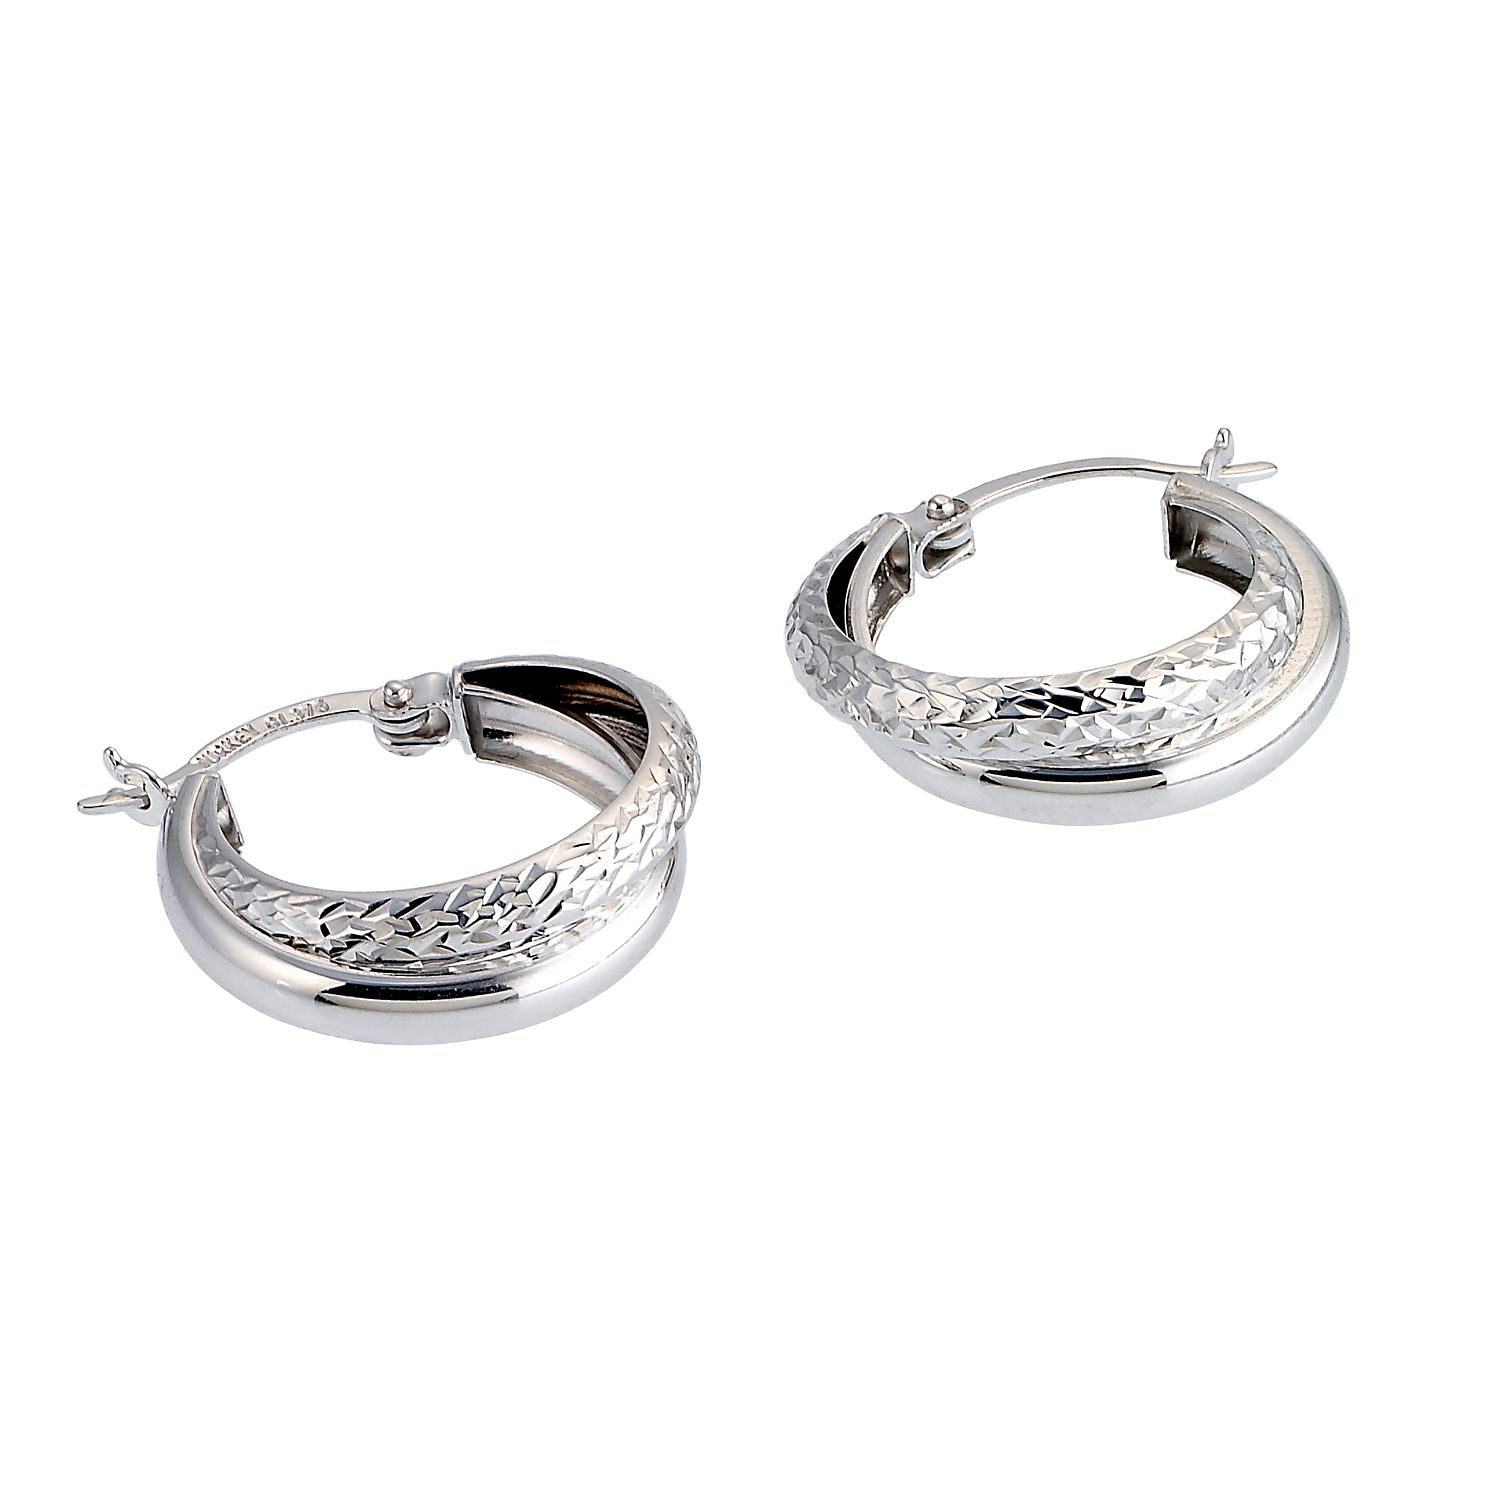 9ct White Gold Diamond Cut 13mm Hoop Earrings - Product number 6467539